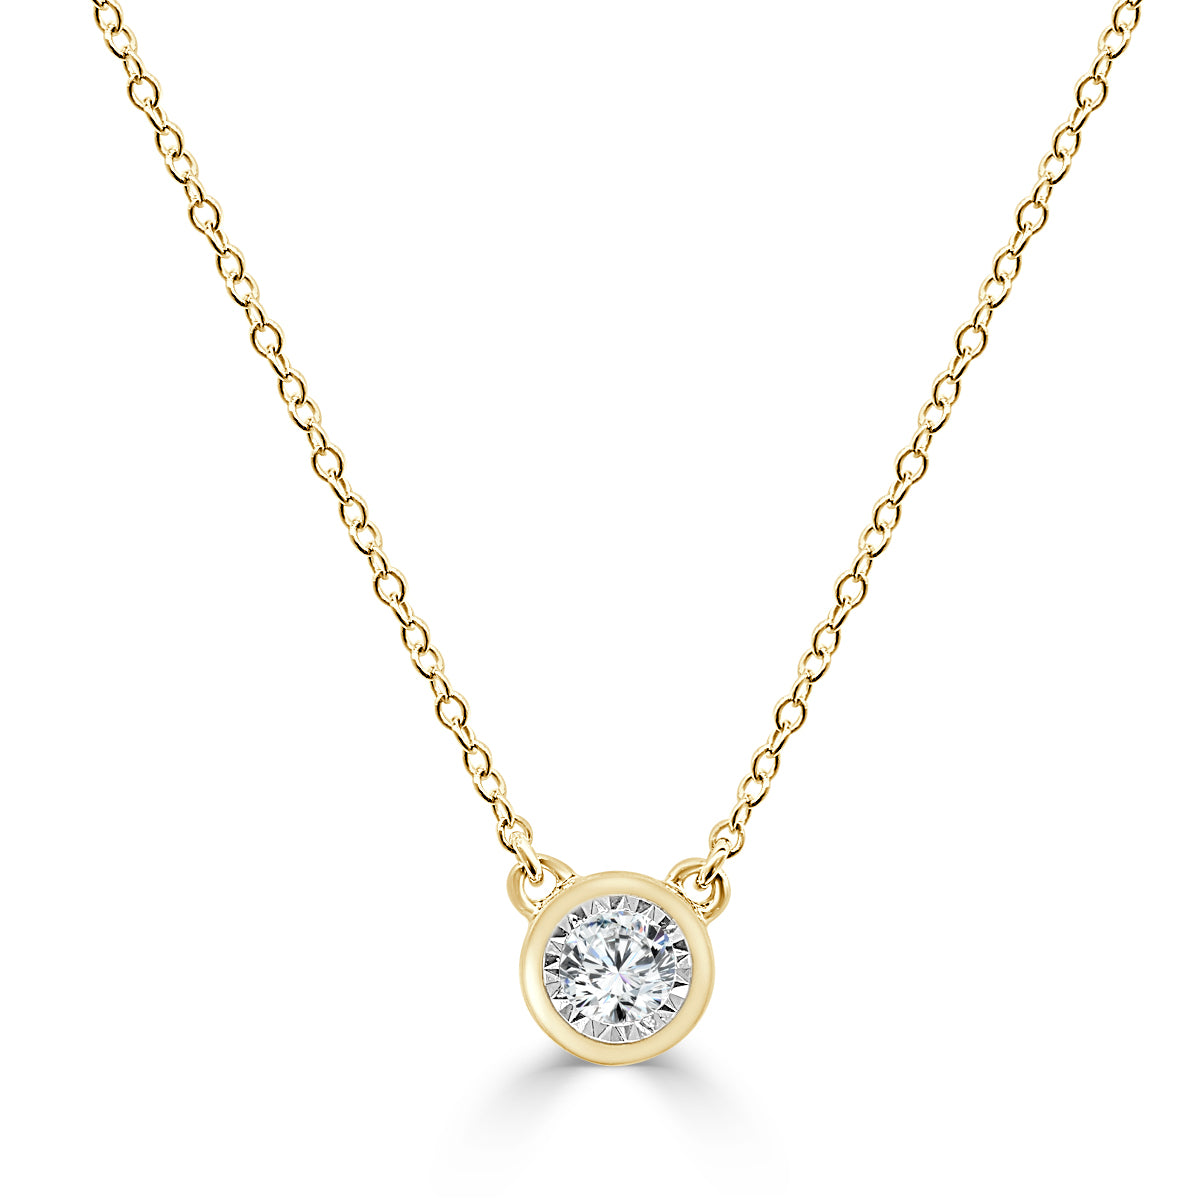 pendant set bezel preset diamond carat f solitaire white pendants vs pearl american necklace g gold